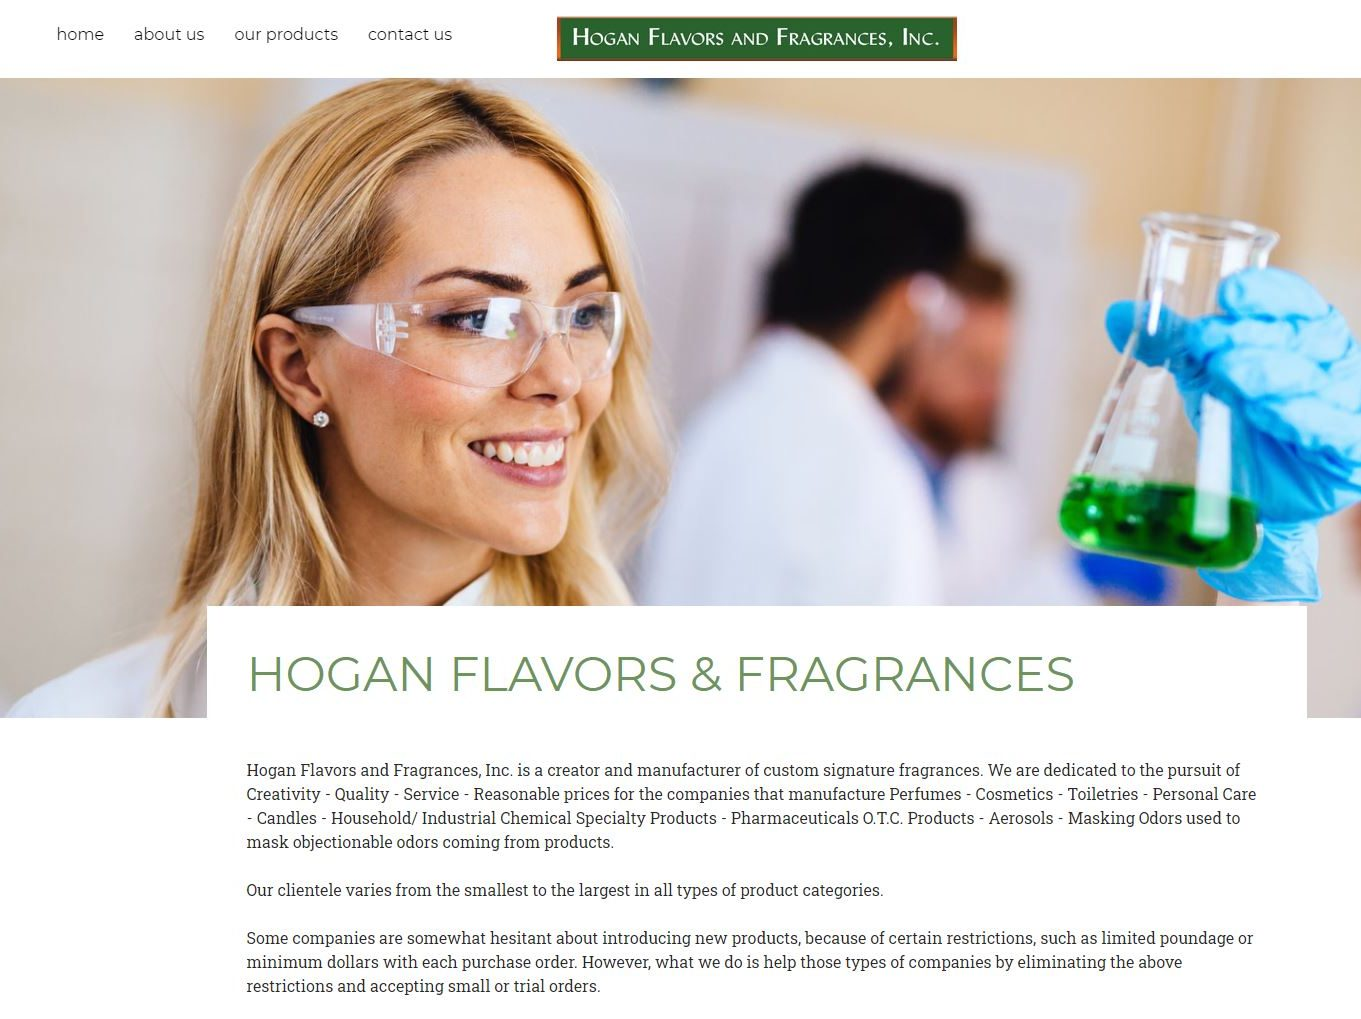 Hogan Flavors & Fragrances